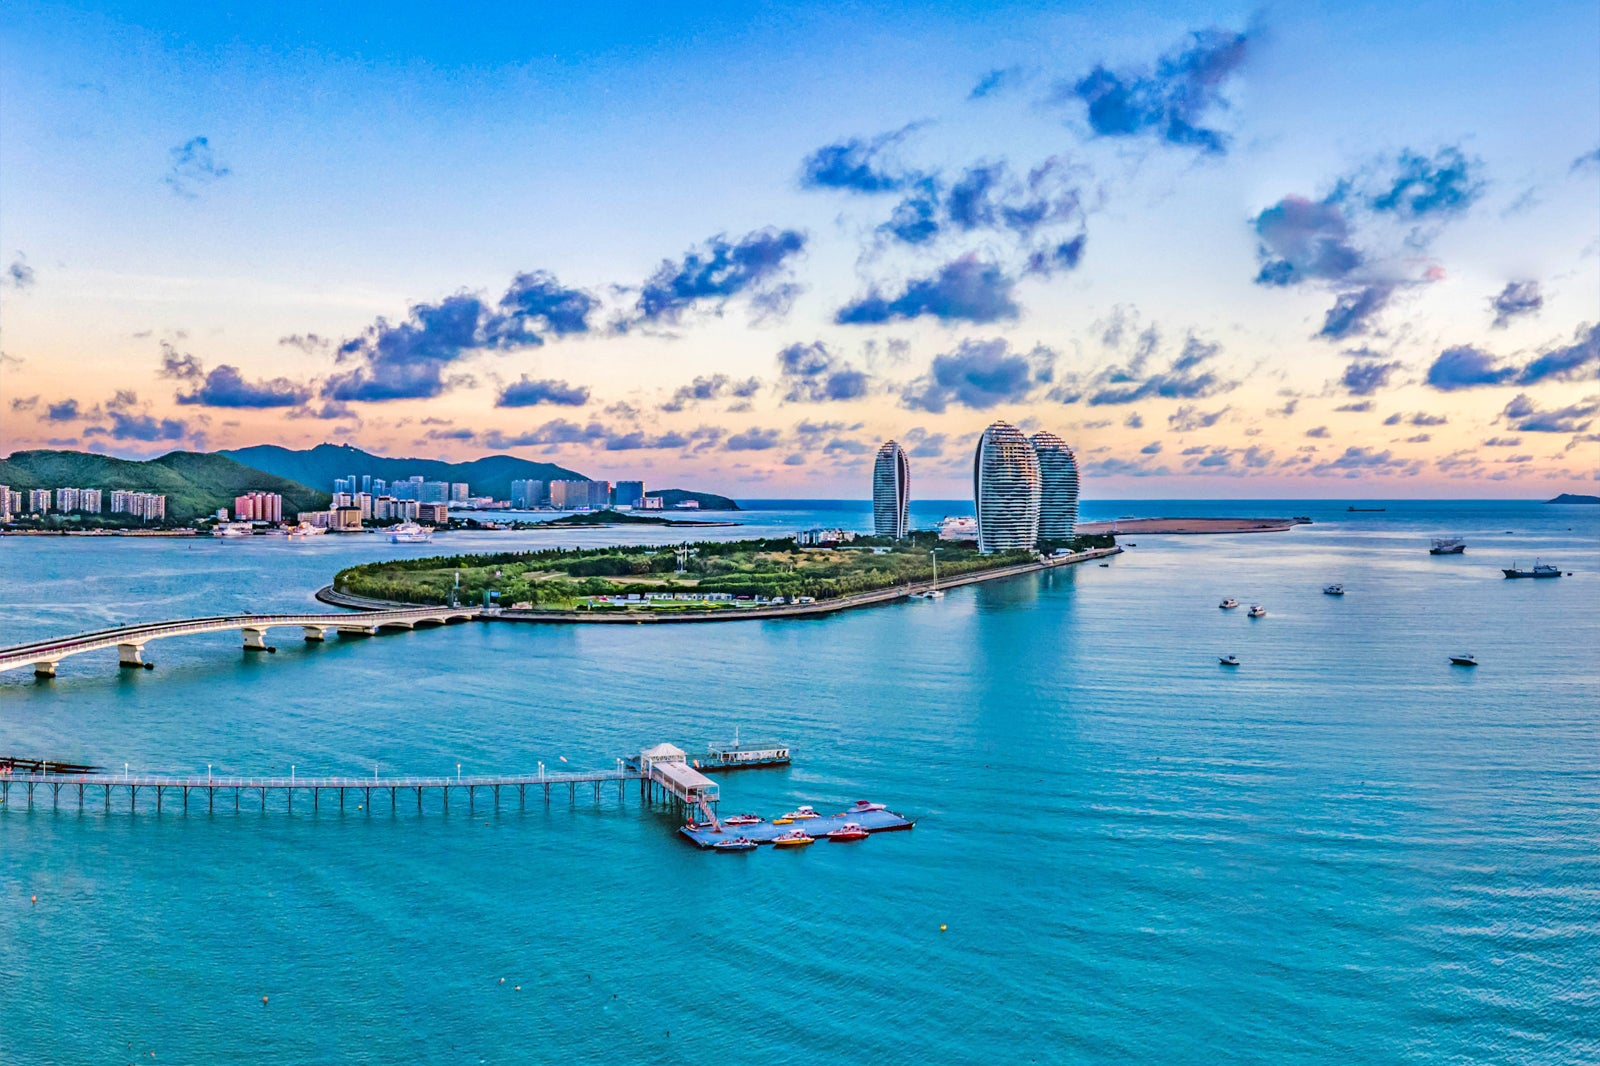 10 Best Islands in Hainan - Which Hainan Island is Best for You?